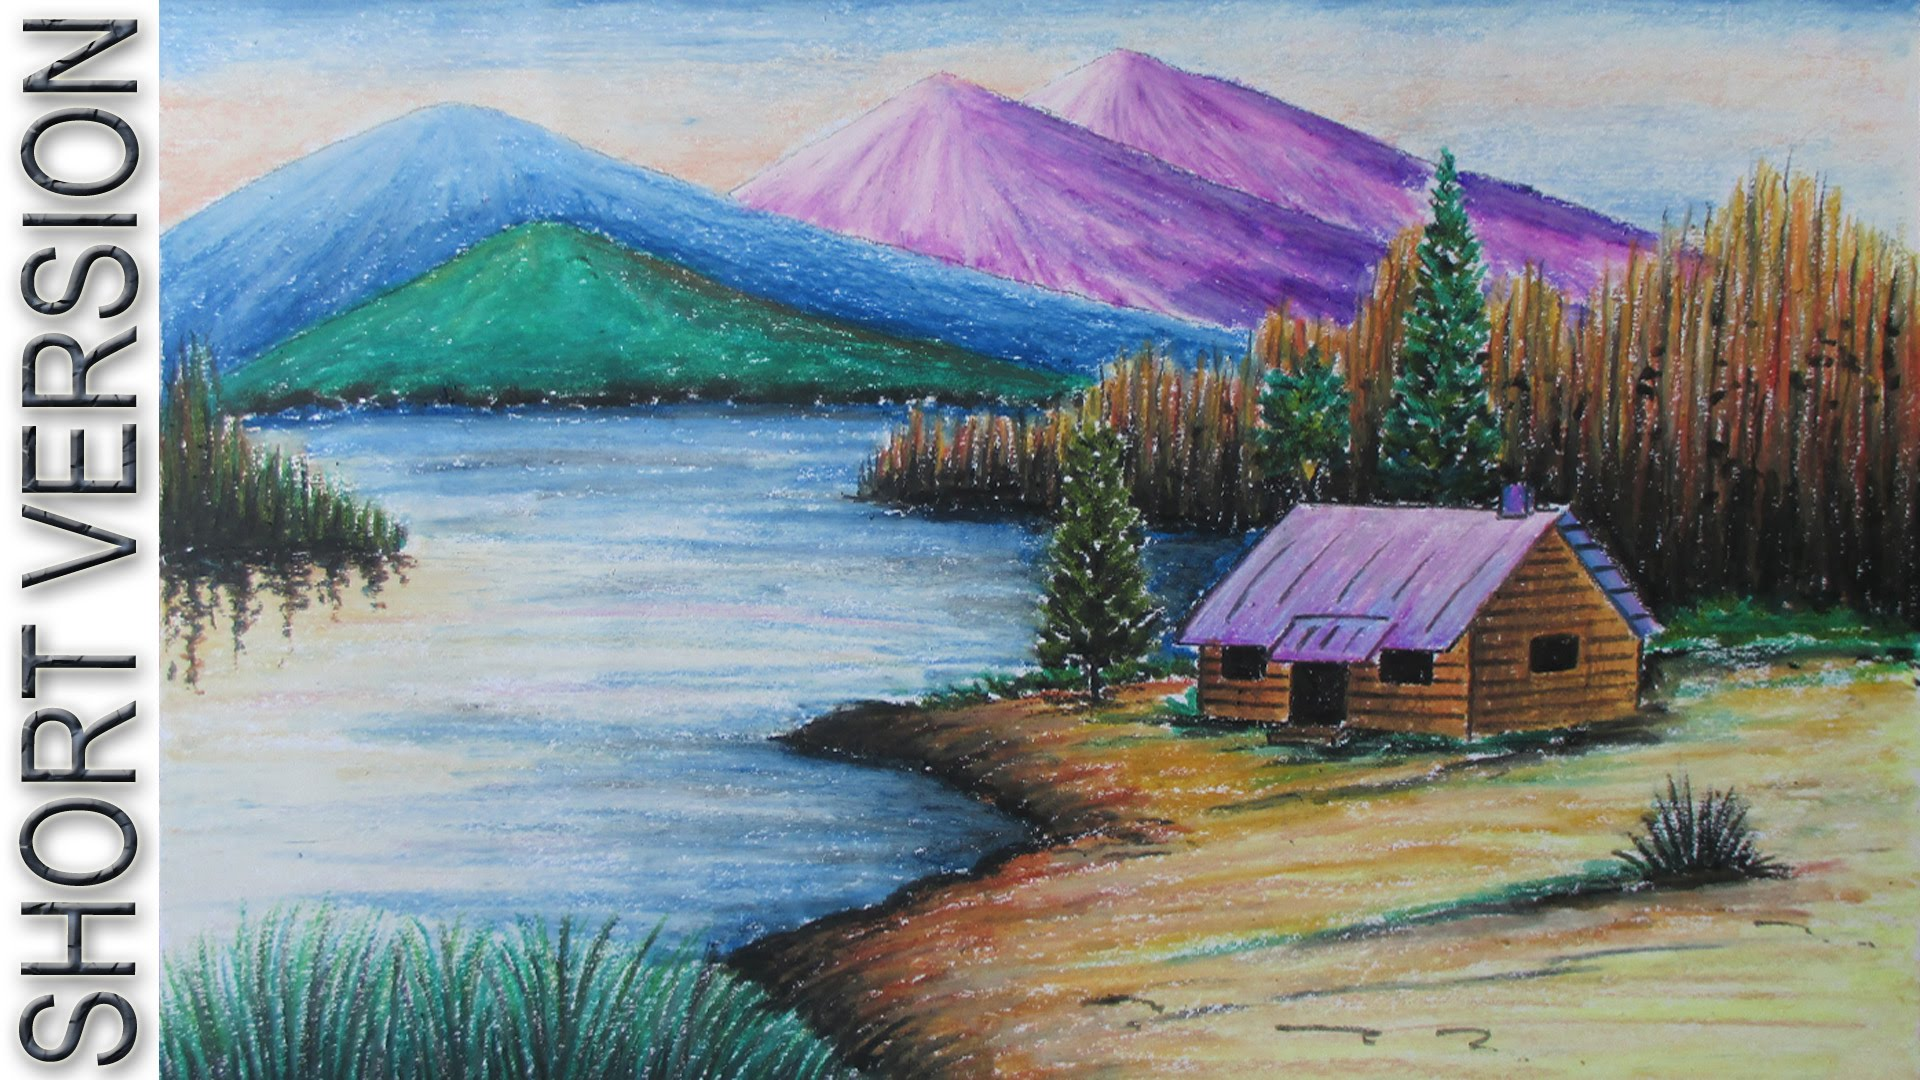 Drawn scenic crayon How with to a Draw